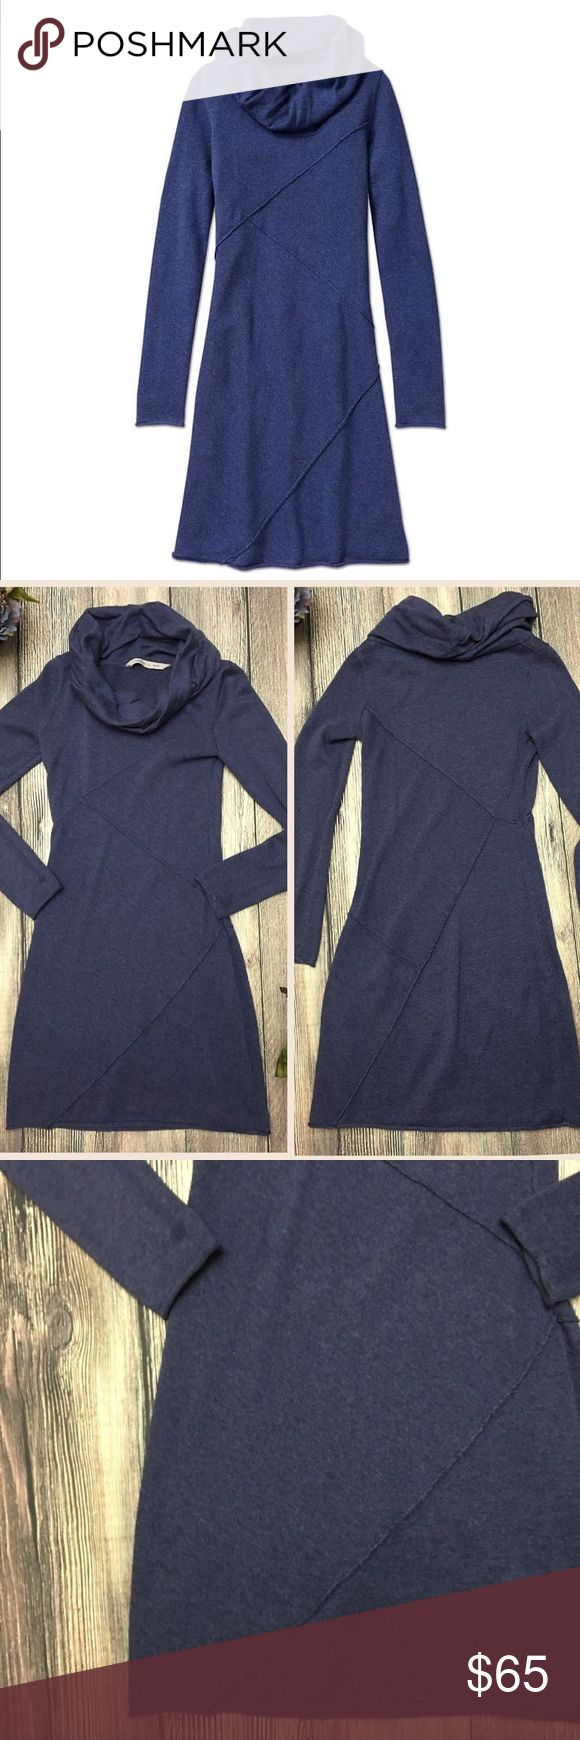 """Athleta Camber Sweater Dress Cowl size XS From Athleta, this Camber dress has a sweet cowl-neck with a twist. Breathable, soft cotton blend in a beautiful shade of deep blue, flattering asymmetrical seam lines hug curves in the right places, rolled raw-edge seams give her dimension and interest. Looks amazing with tall boots for a weekend date. Cotton/Poly blend. Approx 15 1/2"""" bust/pit to pit, 34"""" length shoulder to hem when laid flat. Size XS. (E1) offers warmly welcomed. Athleta Dresses"""